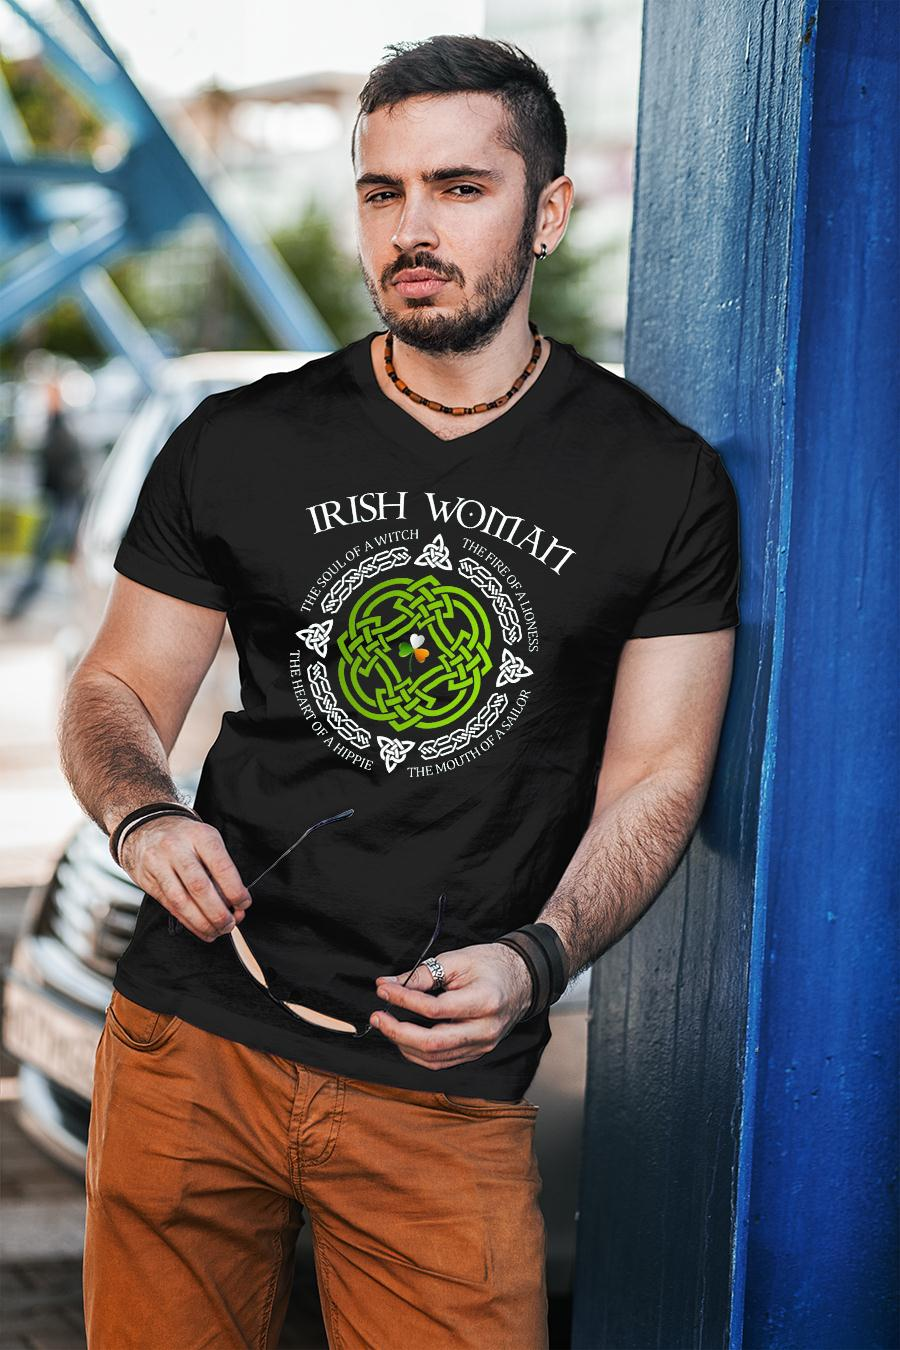 St Patrick's Day Irish Woman The Soul Of A Witch The Fire Of A Lioness shirt unisex